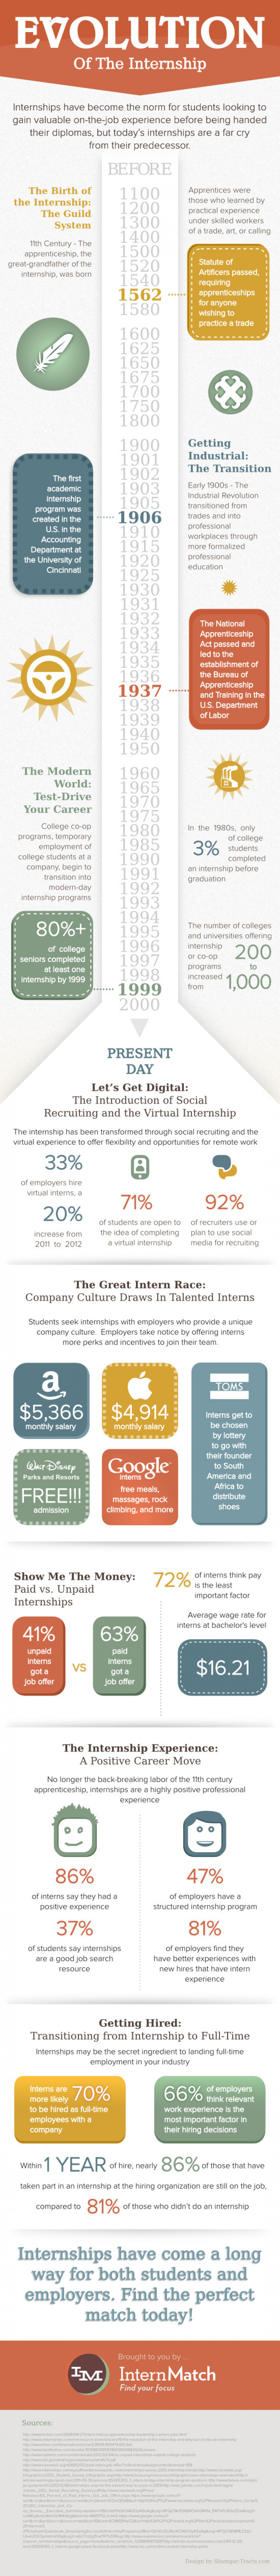 The Evolution of the Internship Infographic